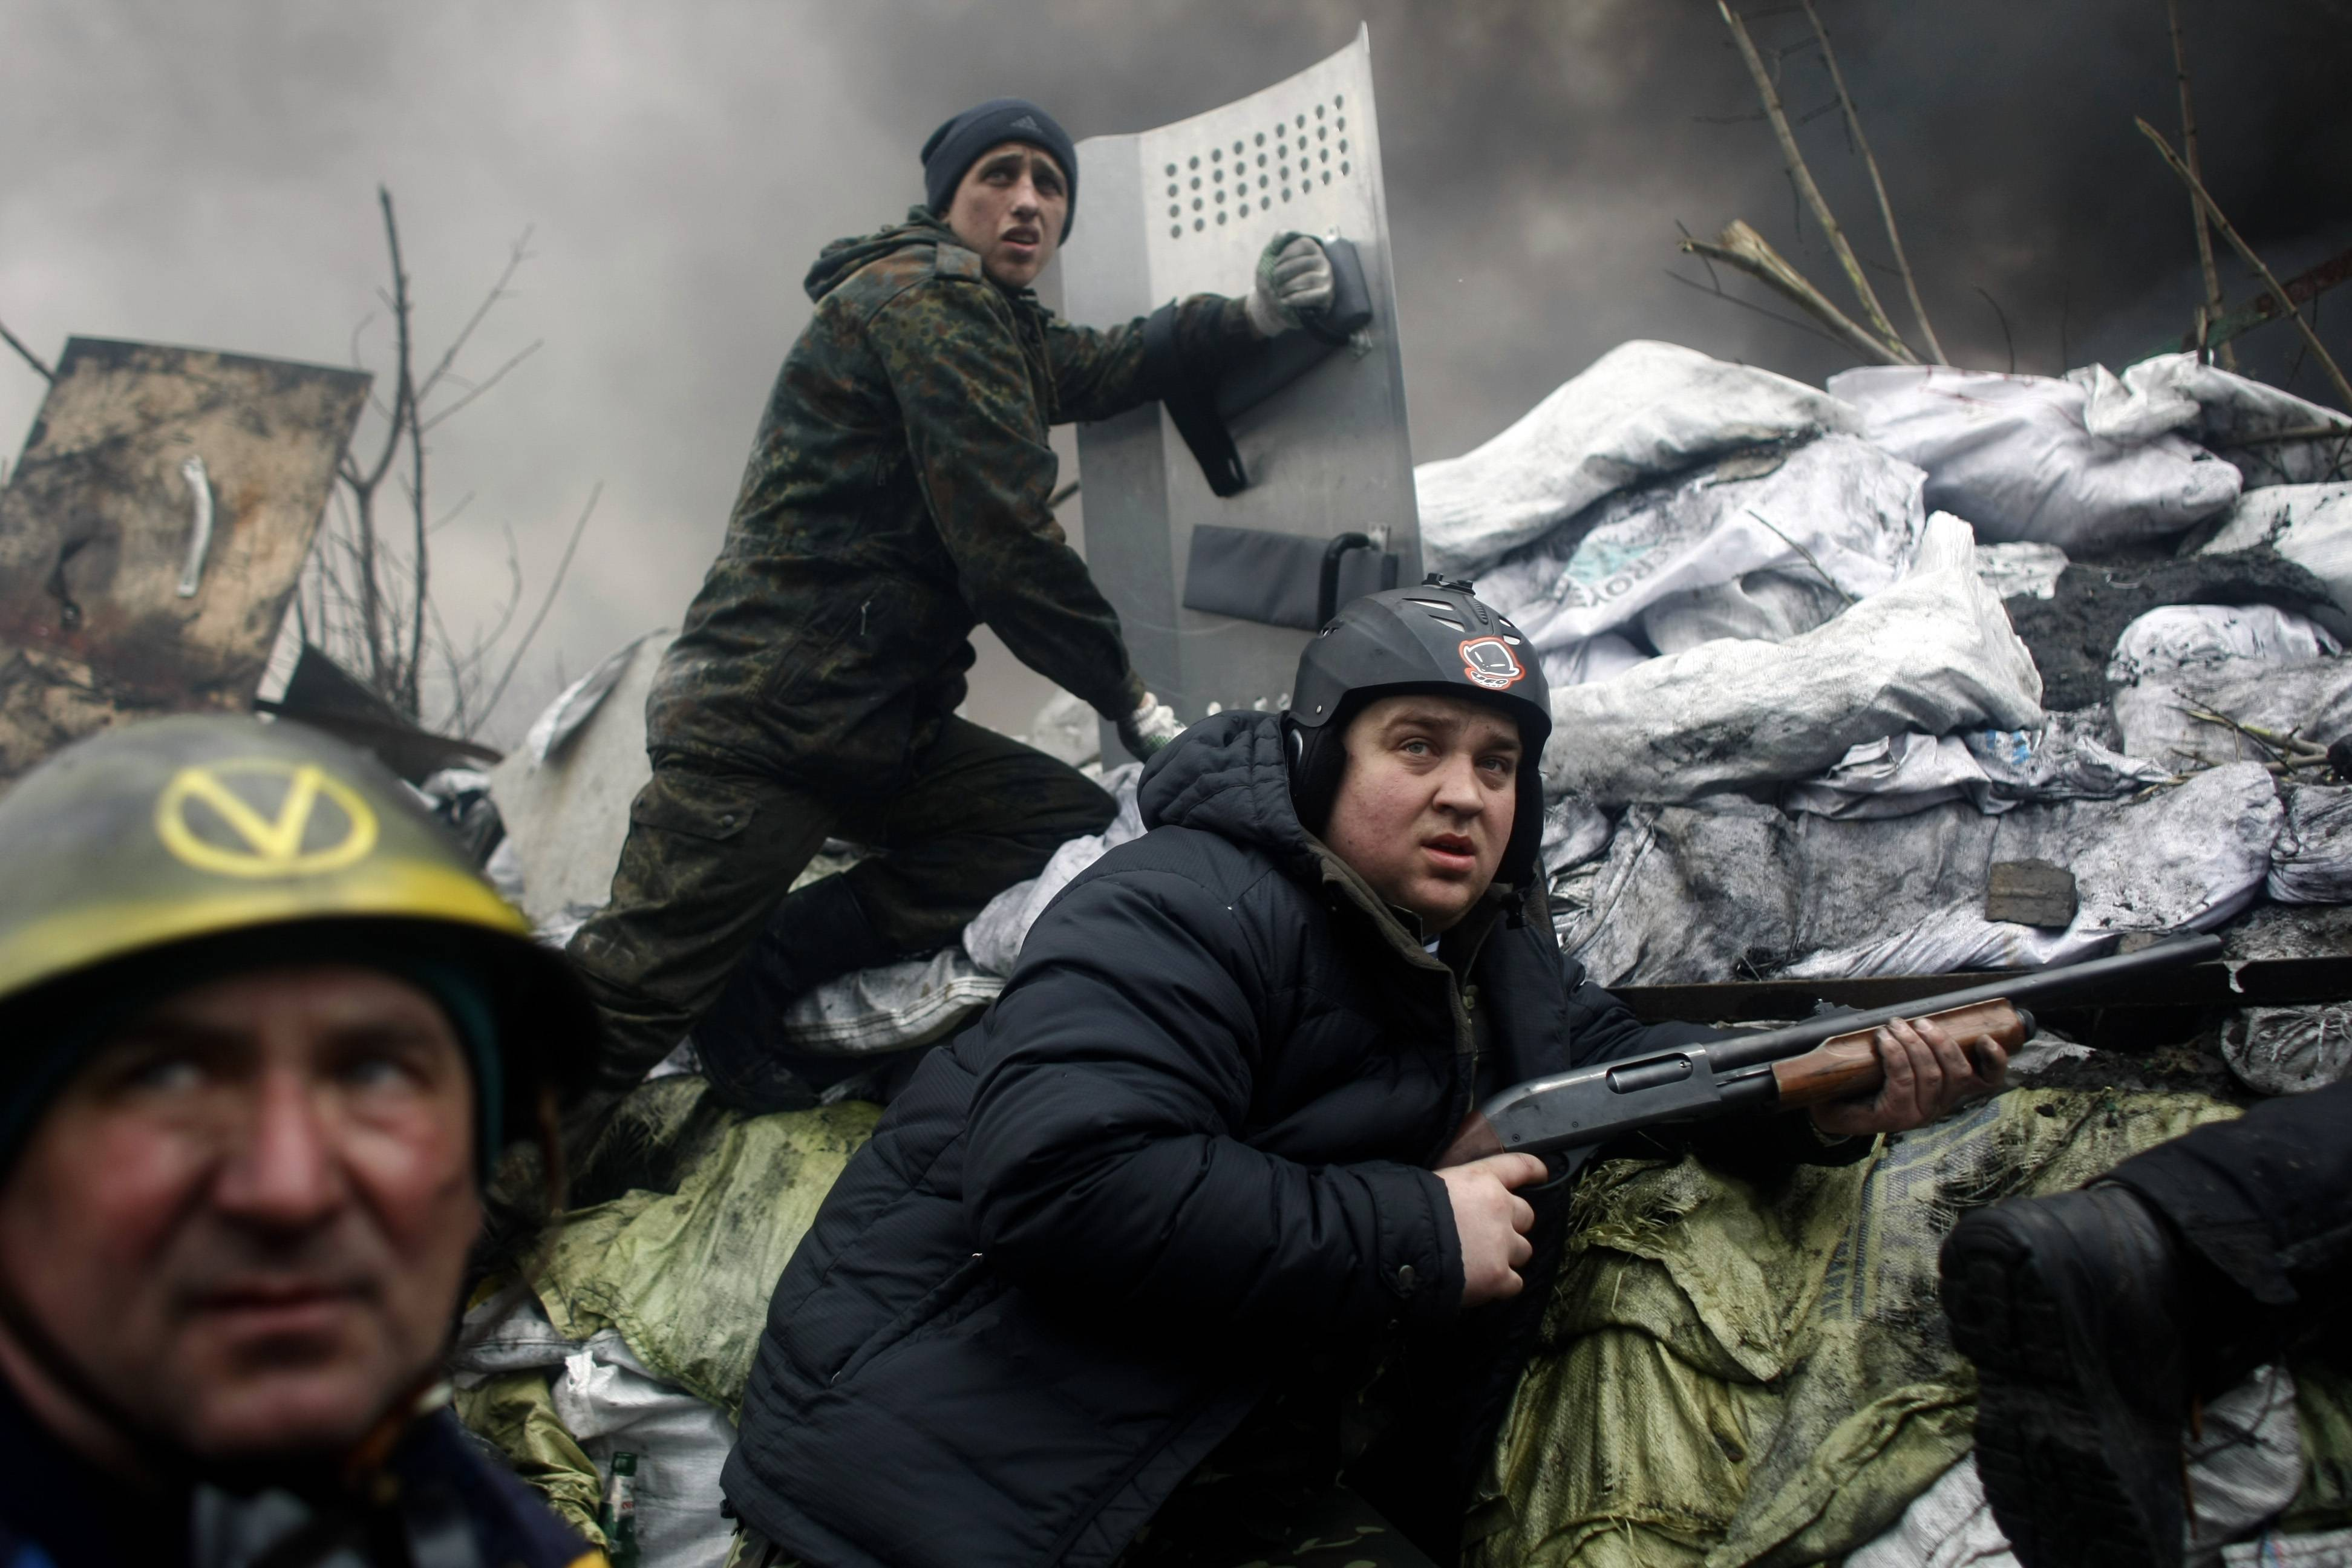 An anti-government protester holds a firearm as he mans a barricade on the outskirts of Independence Square in Kiev, Ukraine, Thursday, Feb. 20, 2014. Fierce clashes between police and protesters, some including gunfire, shattered a brief truce in Ukraine's besieged capital Thursday, killing numerous people. The deaths came in a new eruption of violence just hours after the country's embattled president and the opposition leaders demanding his resignation called for a truce and negotiations to try to resolve Ukraine's political crisis.